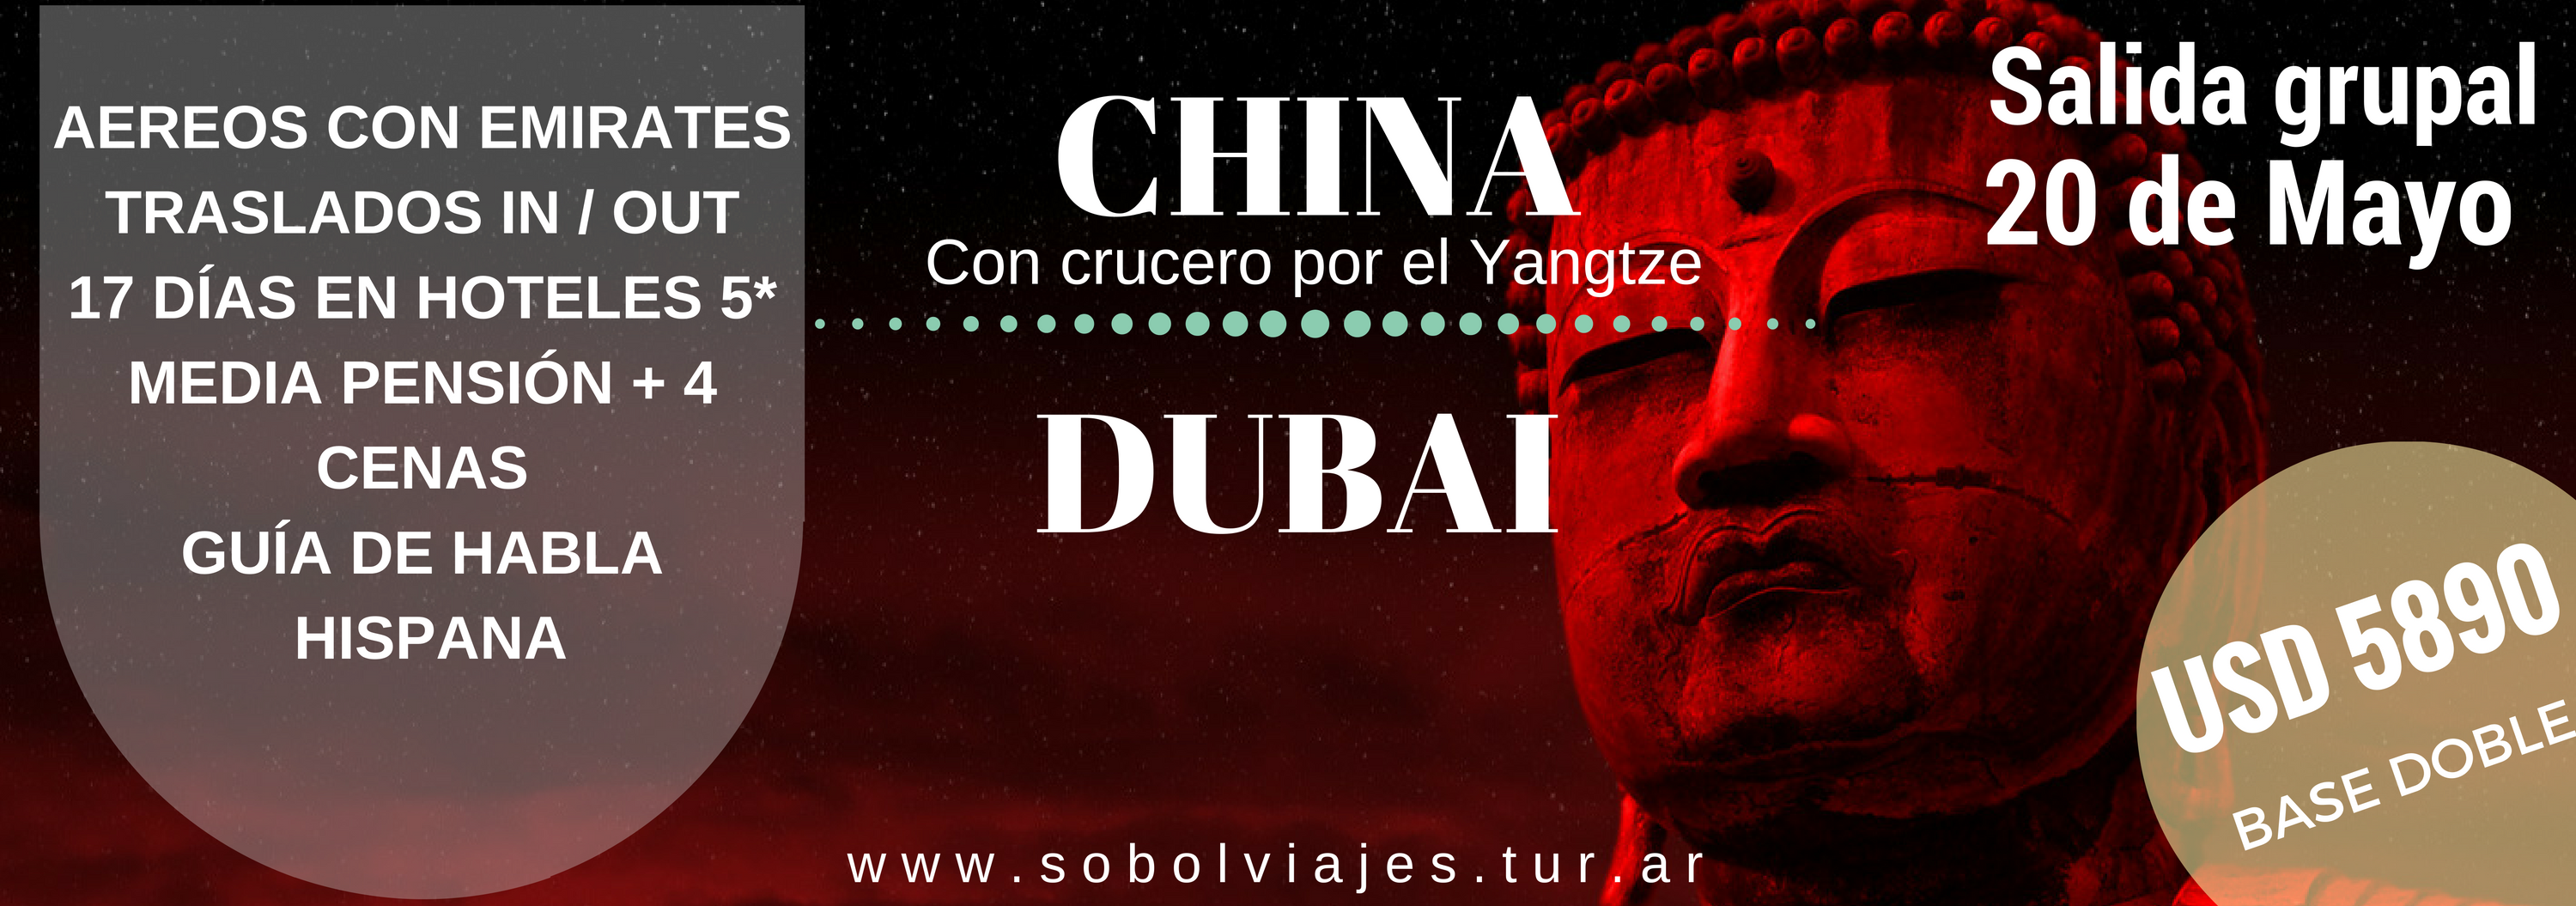 Salida grupal China + Dubai